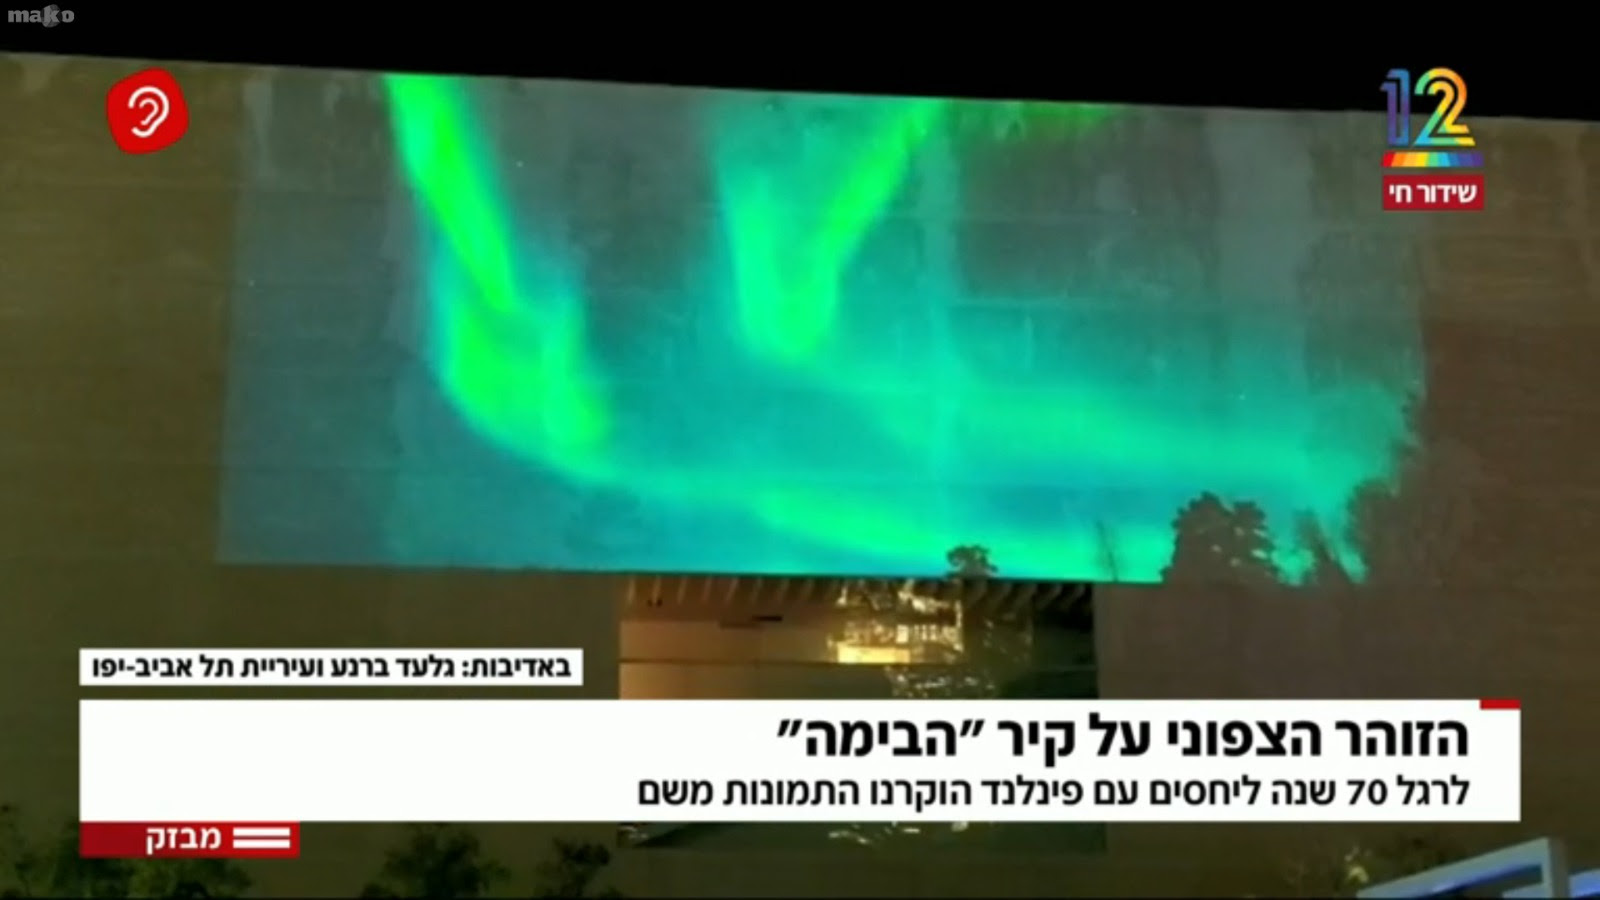 Channel 12 news Tel Aviv Visit Rovaniemi Northern Lights.